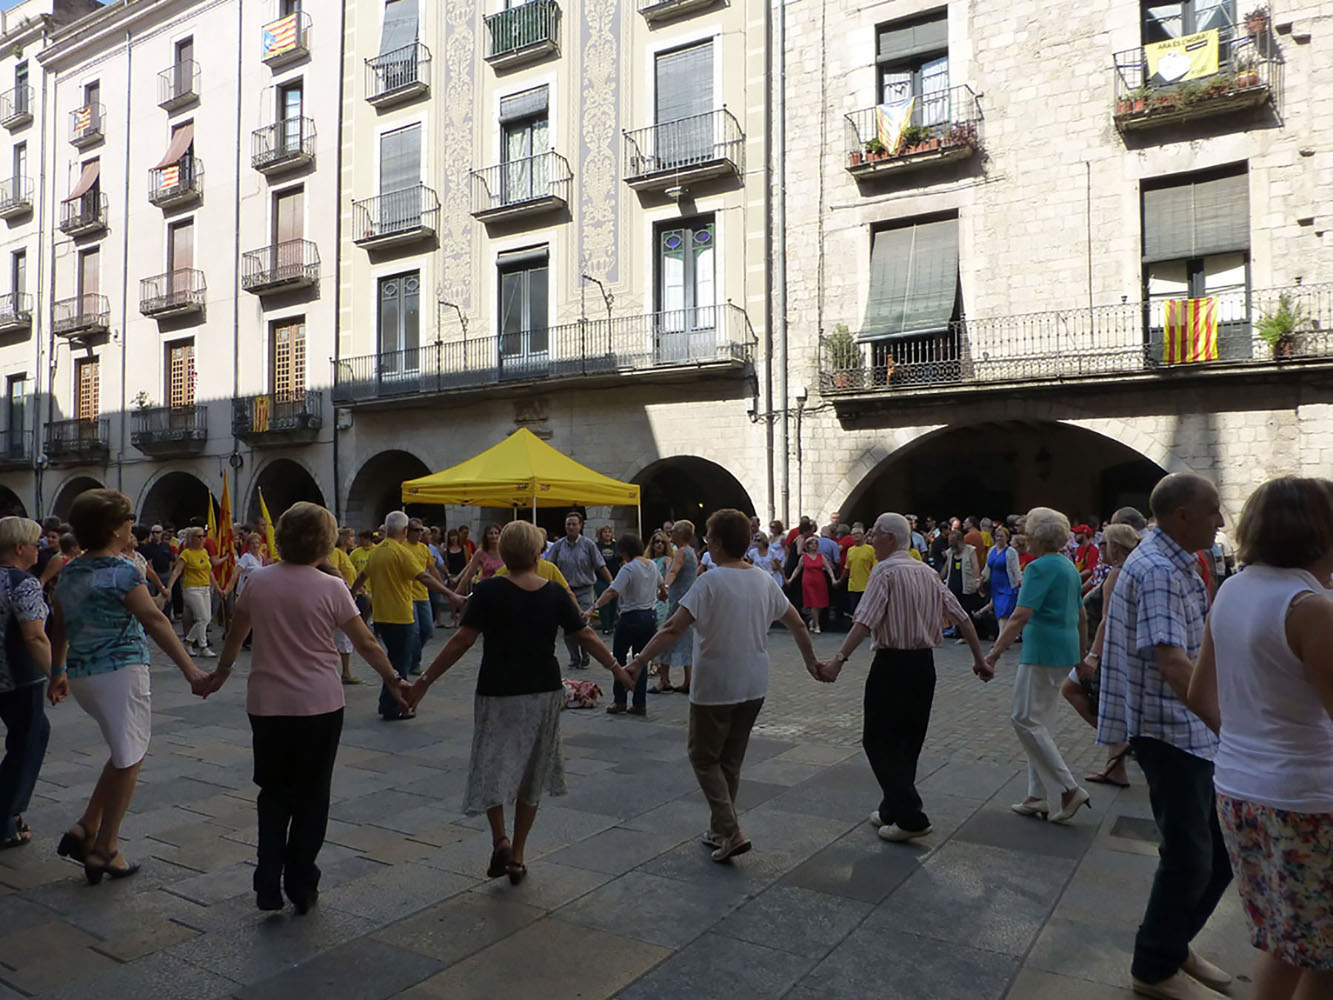 Everything was festive in Girona on the National Day of Catalonia.